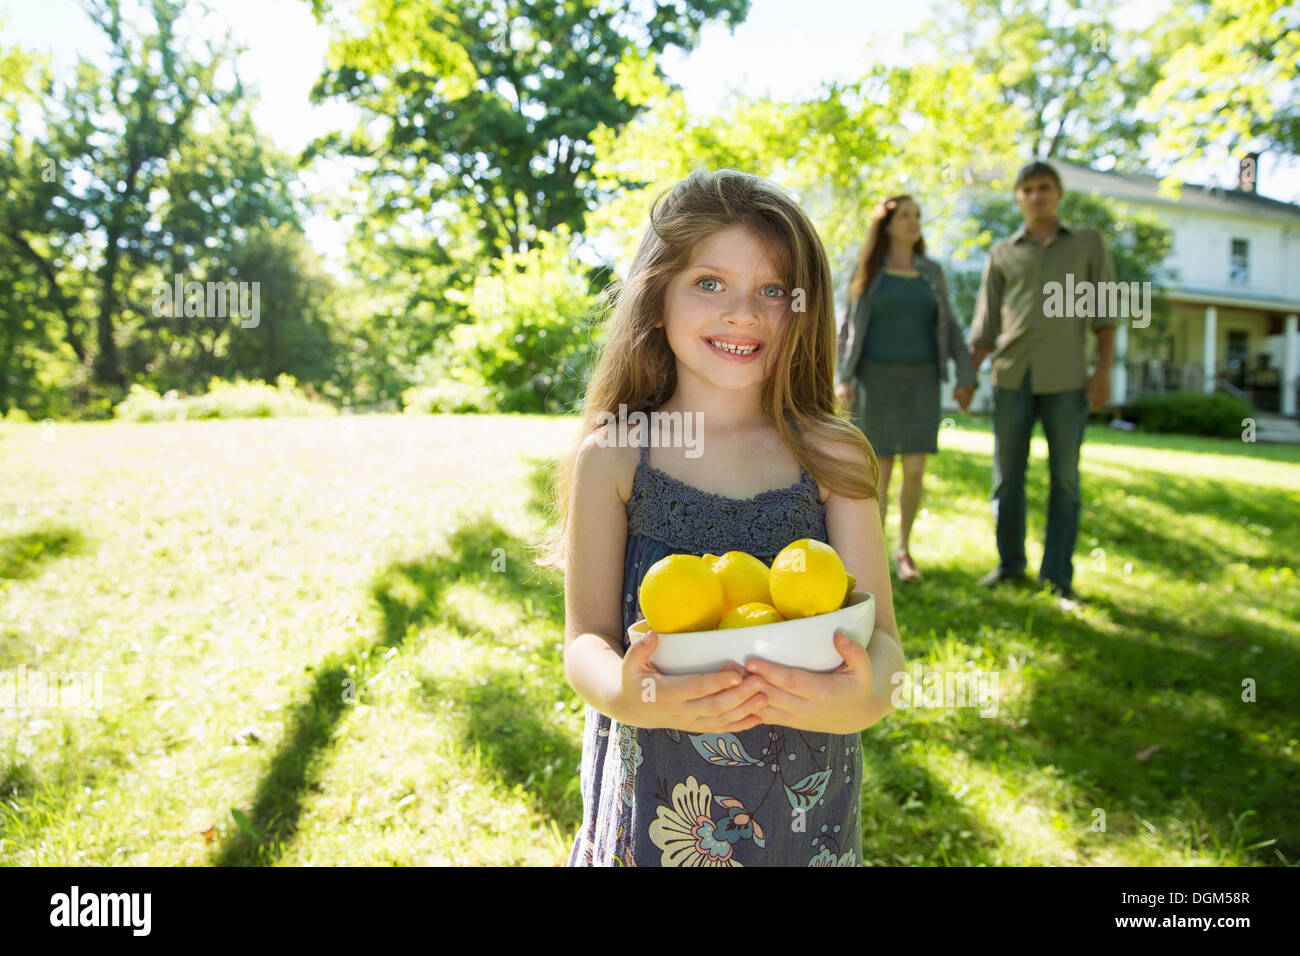 Farm. Children and adults working together. A girl holding a crate of lemons, fresh fruits. Two adults in the background. - Stock Image